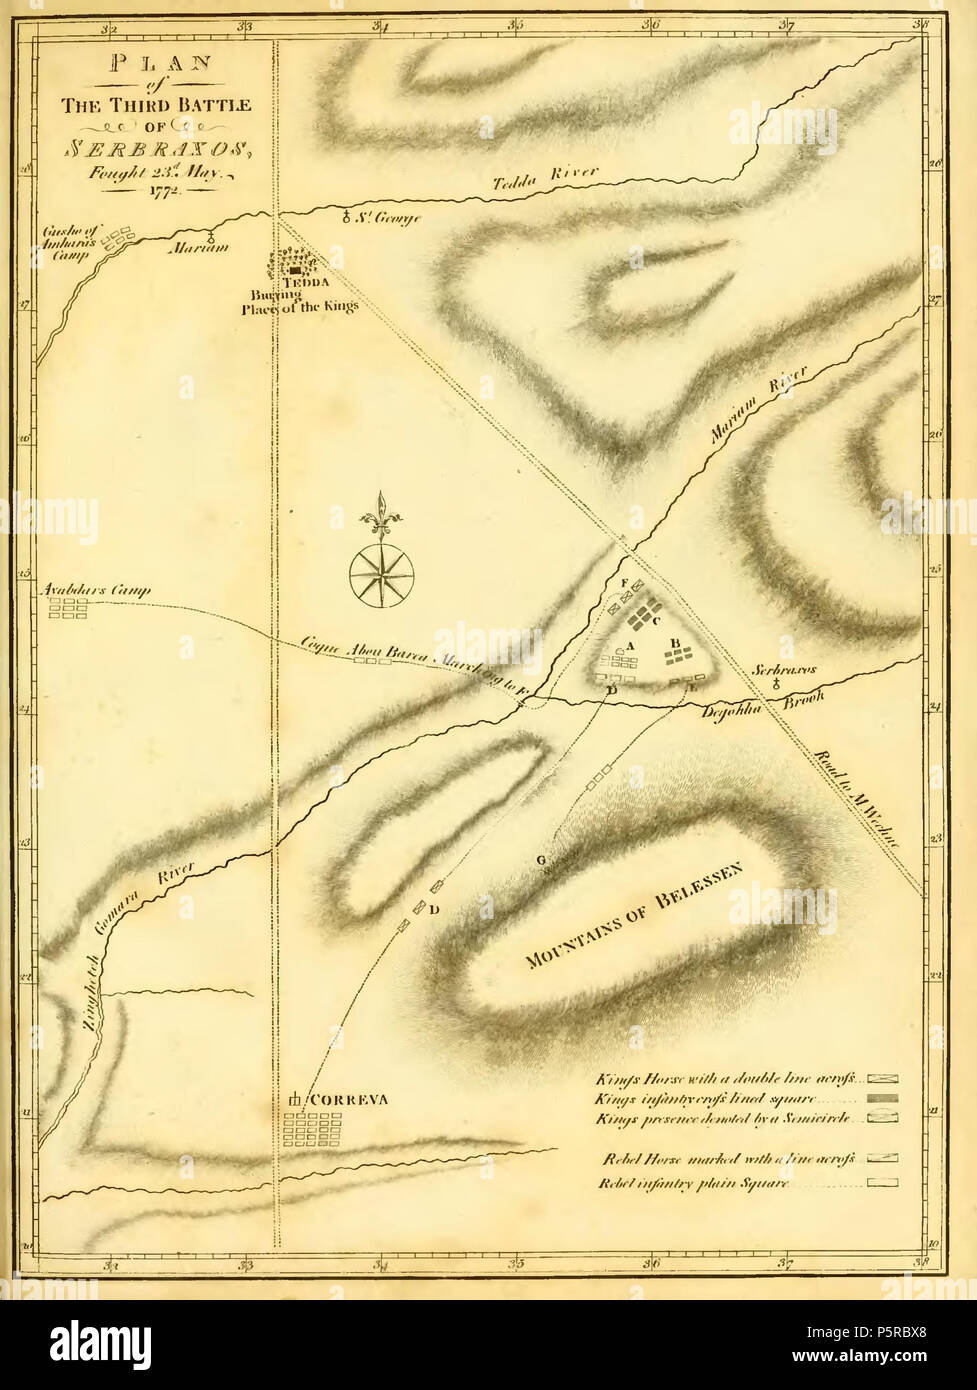 hight resolution of n a english diagram of the three battles of sarbakusa actions of 23 may 1772 1790 james bruce 242 bruce battles of sarbakusa03